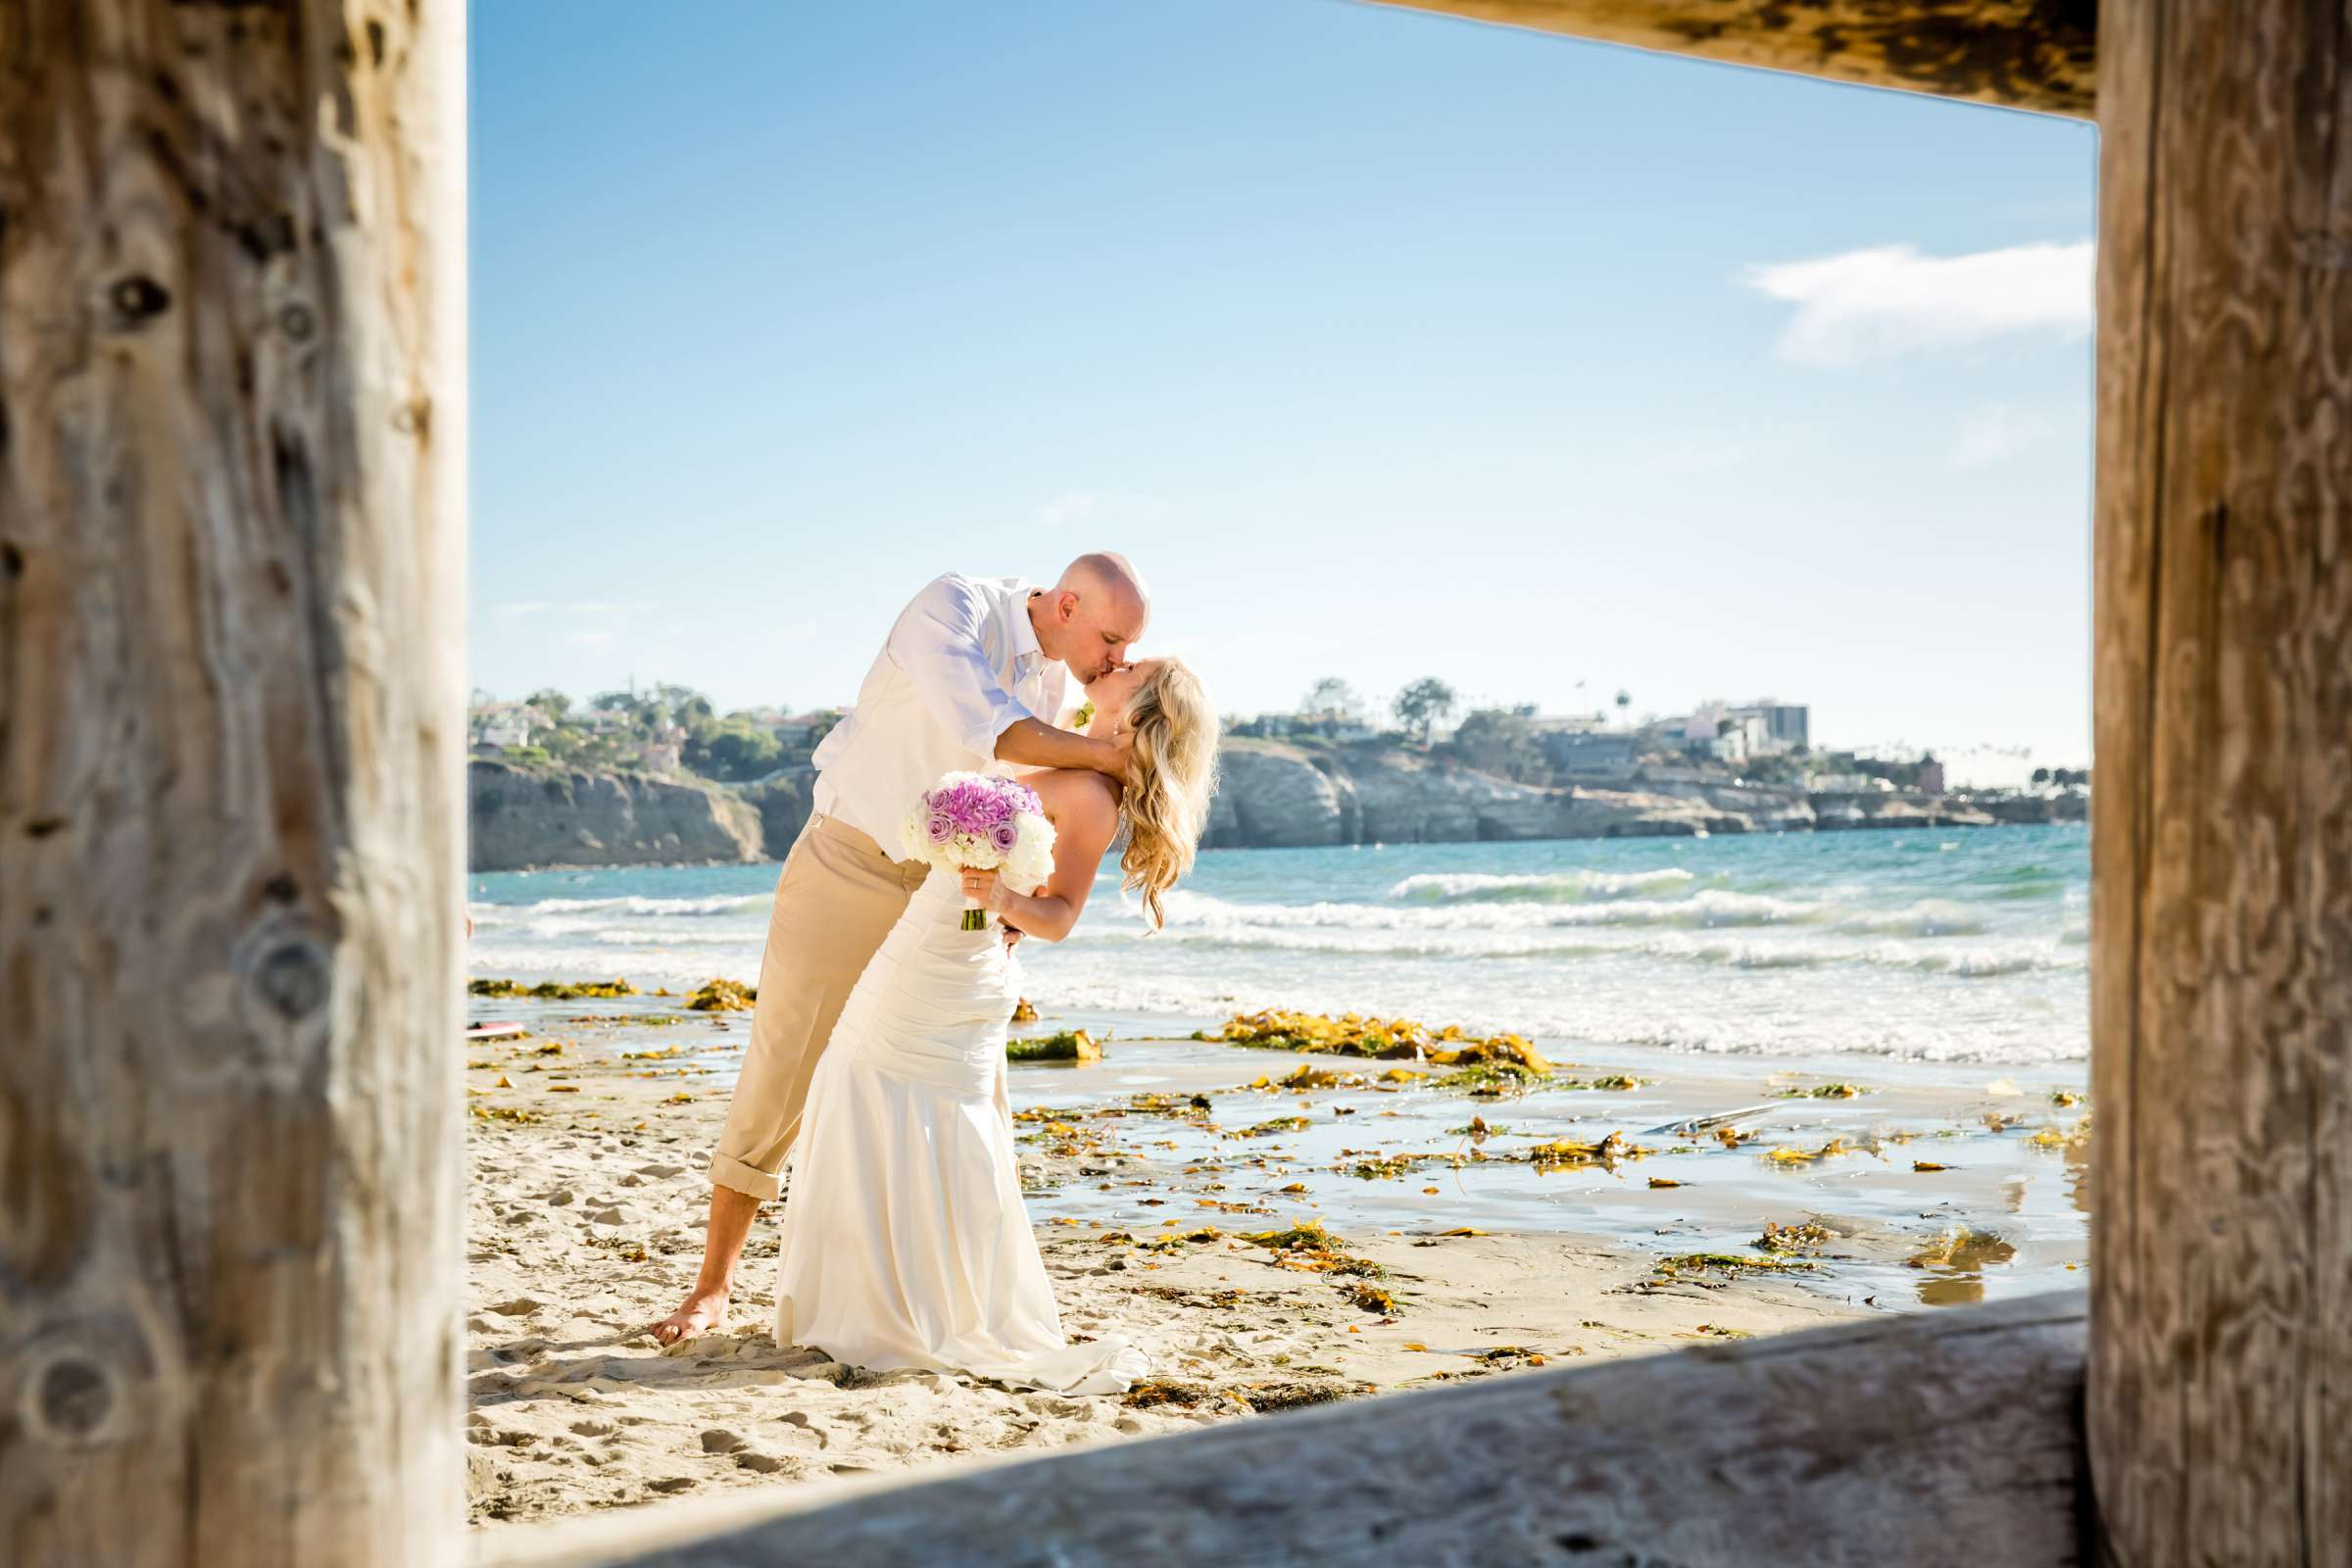 La Jolla Shores Hotel Wedding coordinated by I Do Weddings, Stefanie and Craig Wedding Photo #373295 by True Photography